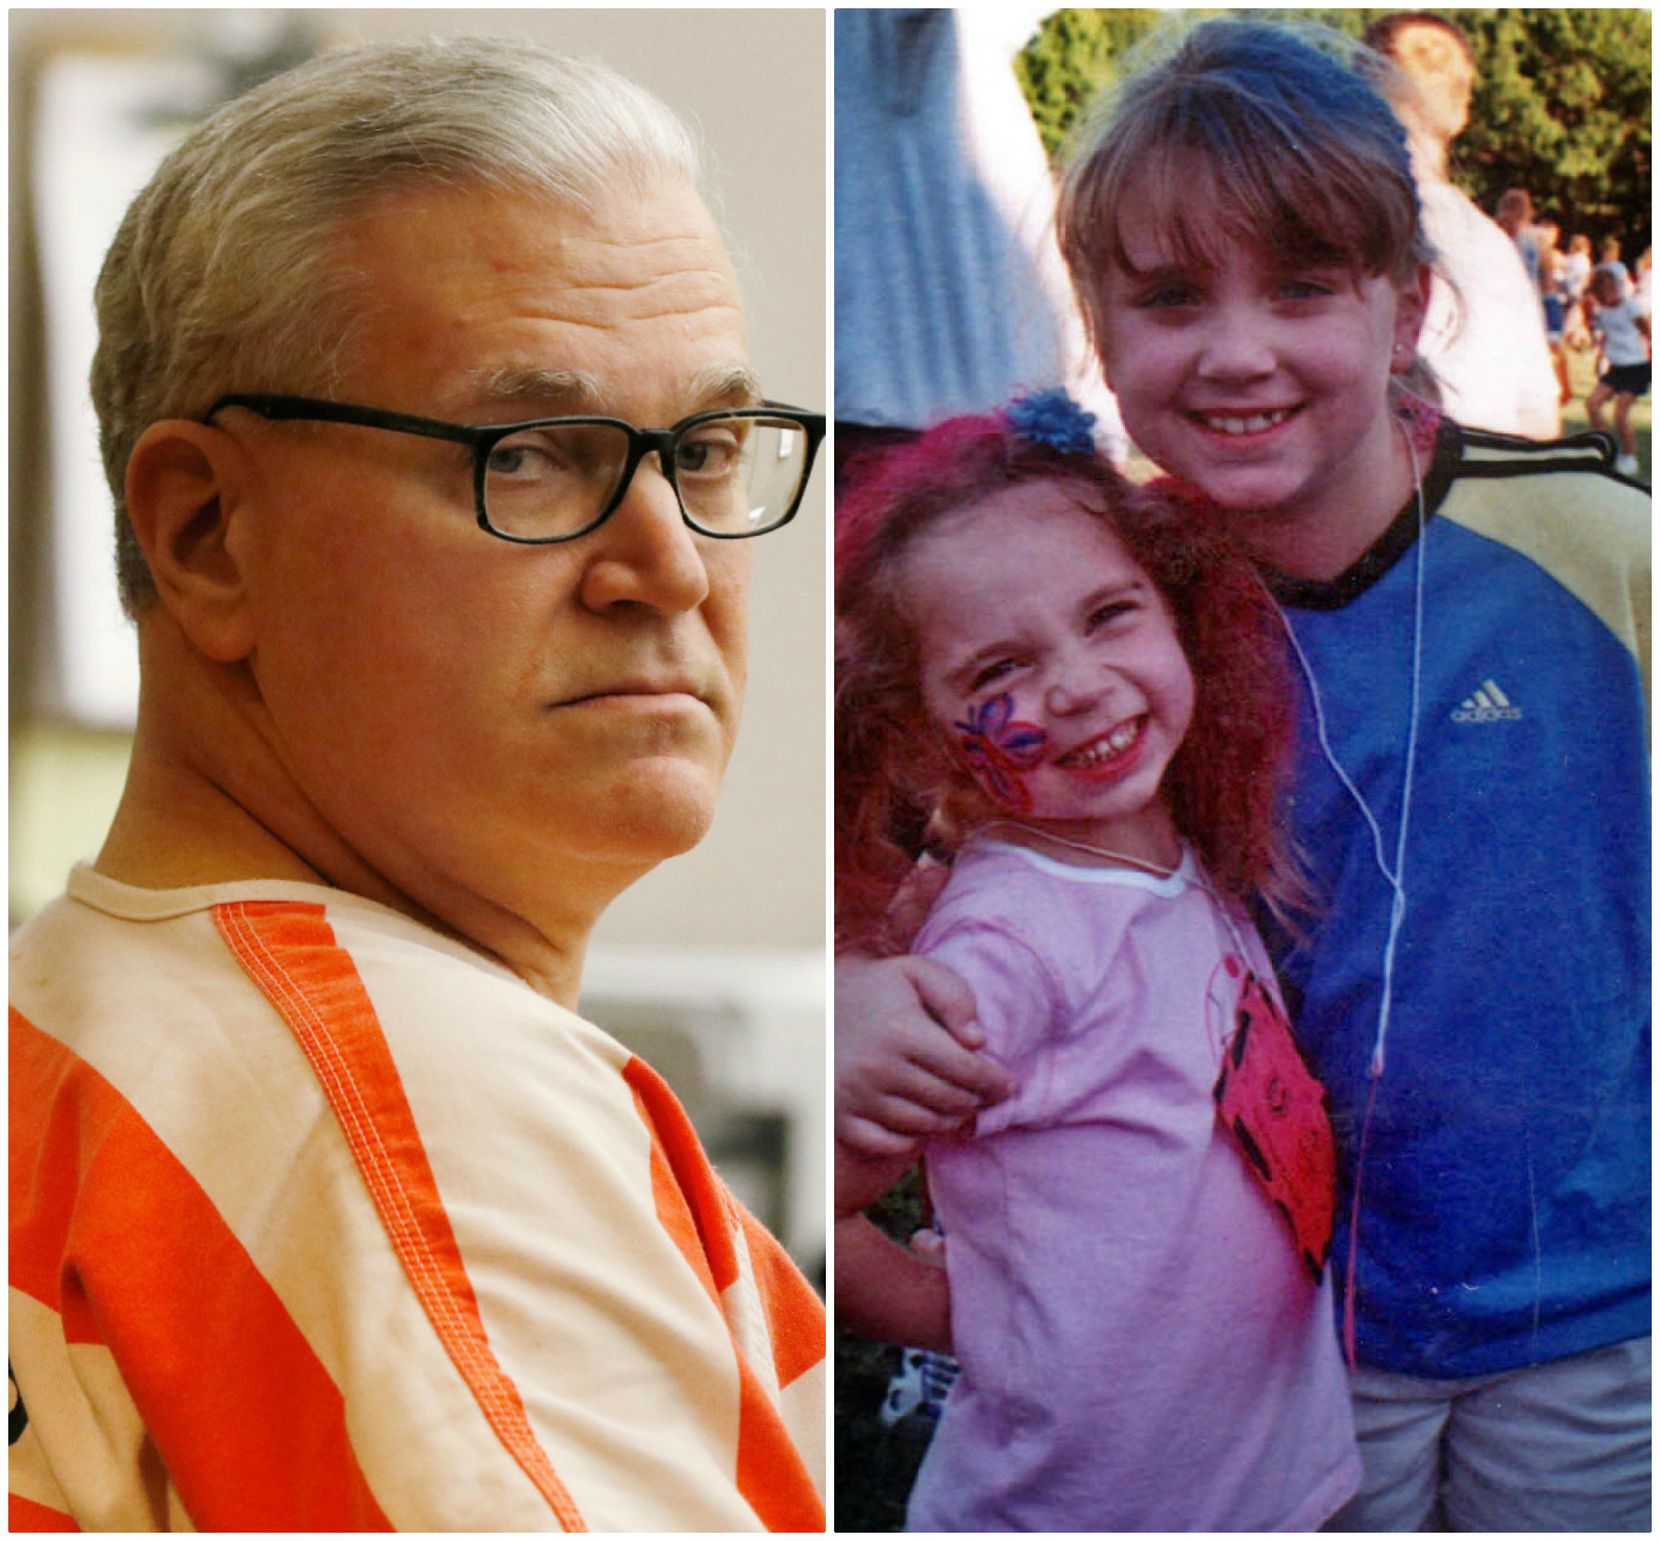 John Battaglia is scheduled to die Feb. 1 for killing his daughters, 6-year-old Liberty (left) and 9-year-old Faith, in 2001.